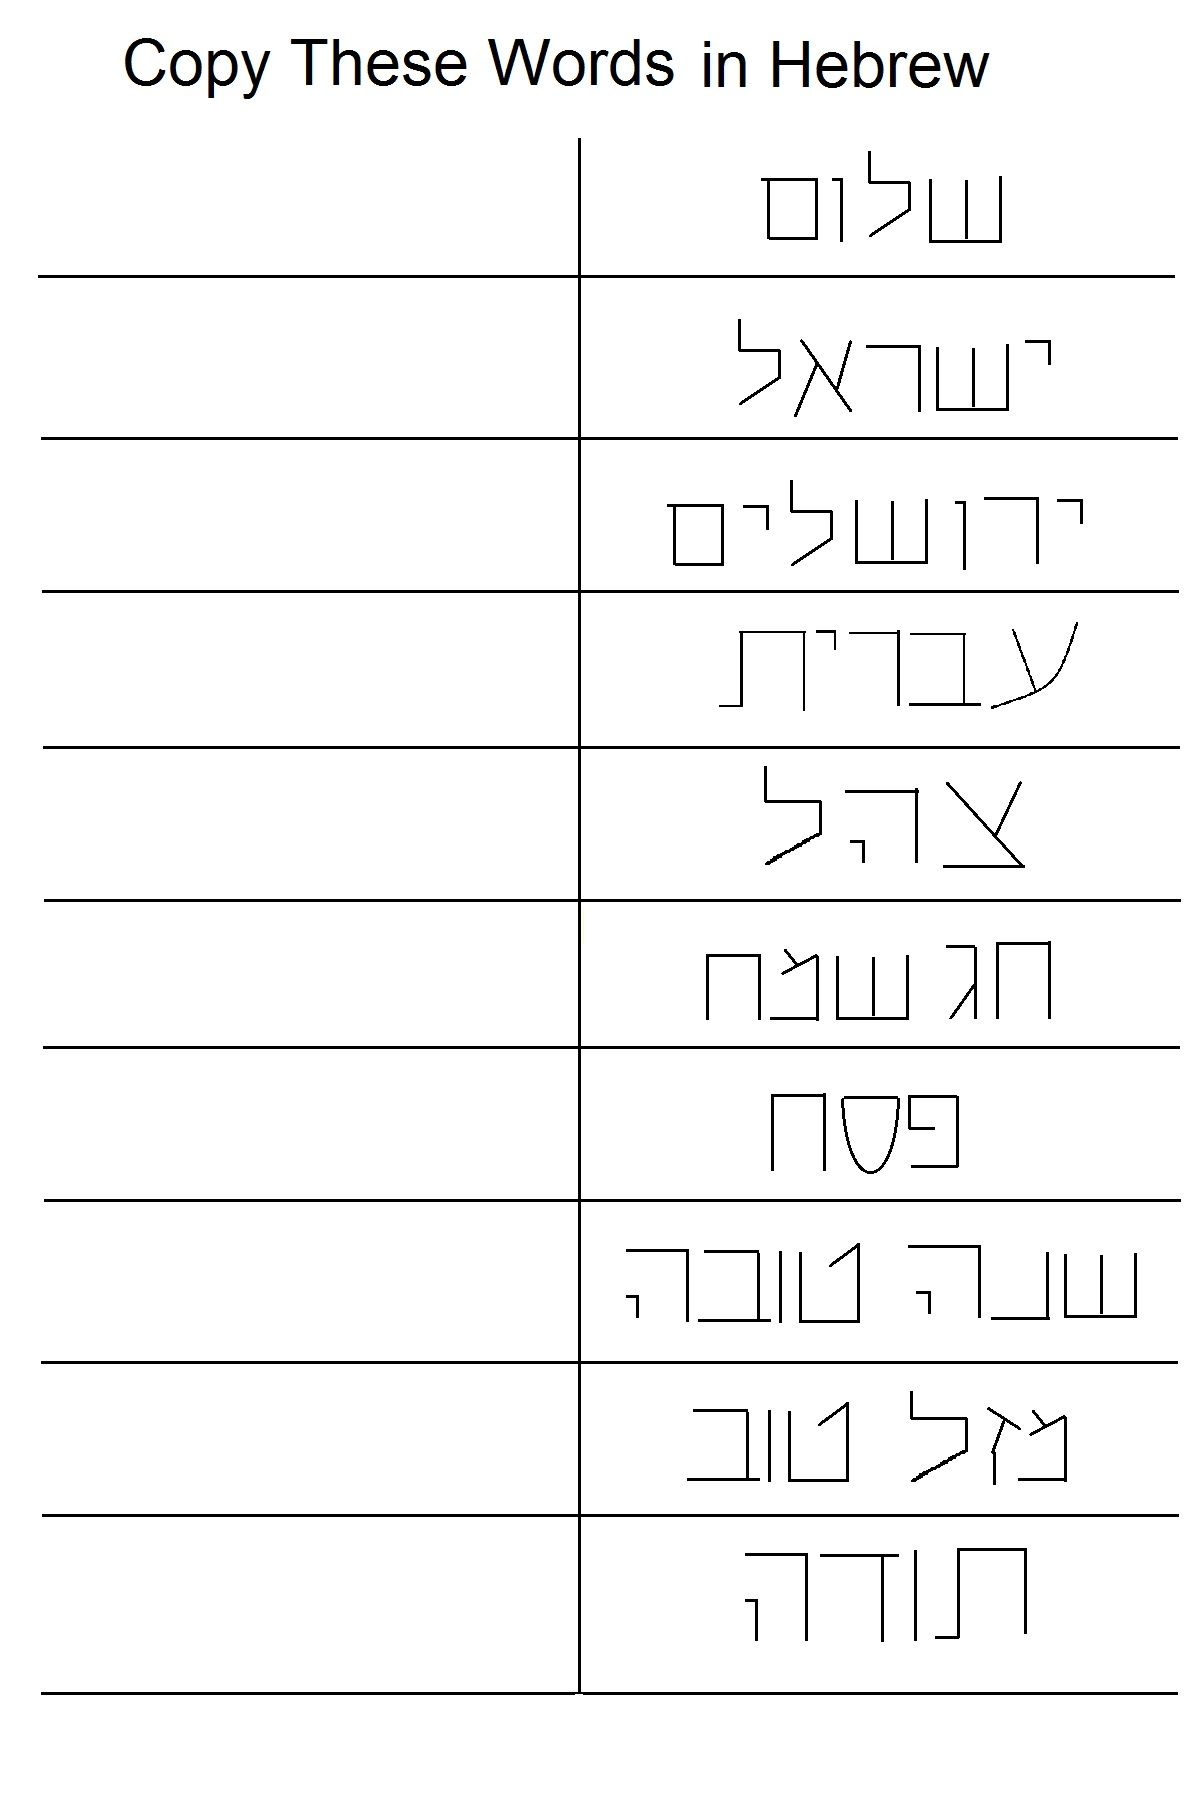 Predownload: Practice Pages For Those Learning To Write Hebrew Hebrew Alphabet Learn Hebrew Alphabet Hebrew Writing [ 1800 x 1200 Pixel ]